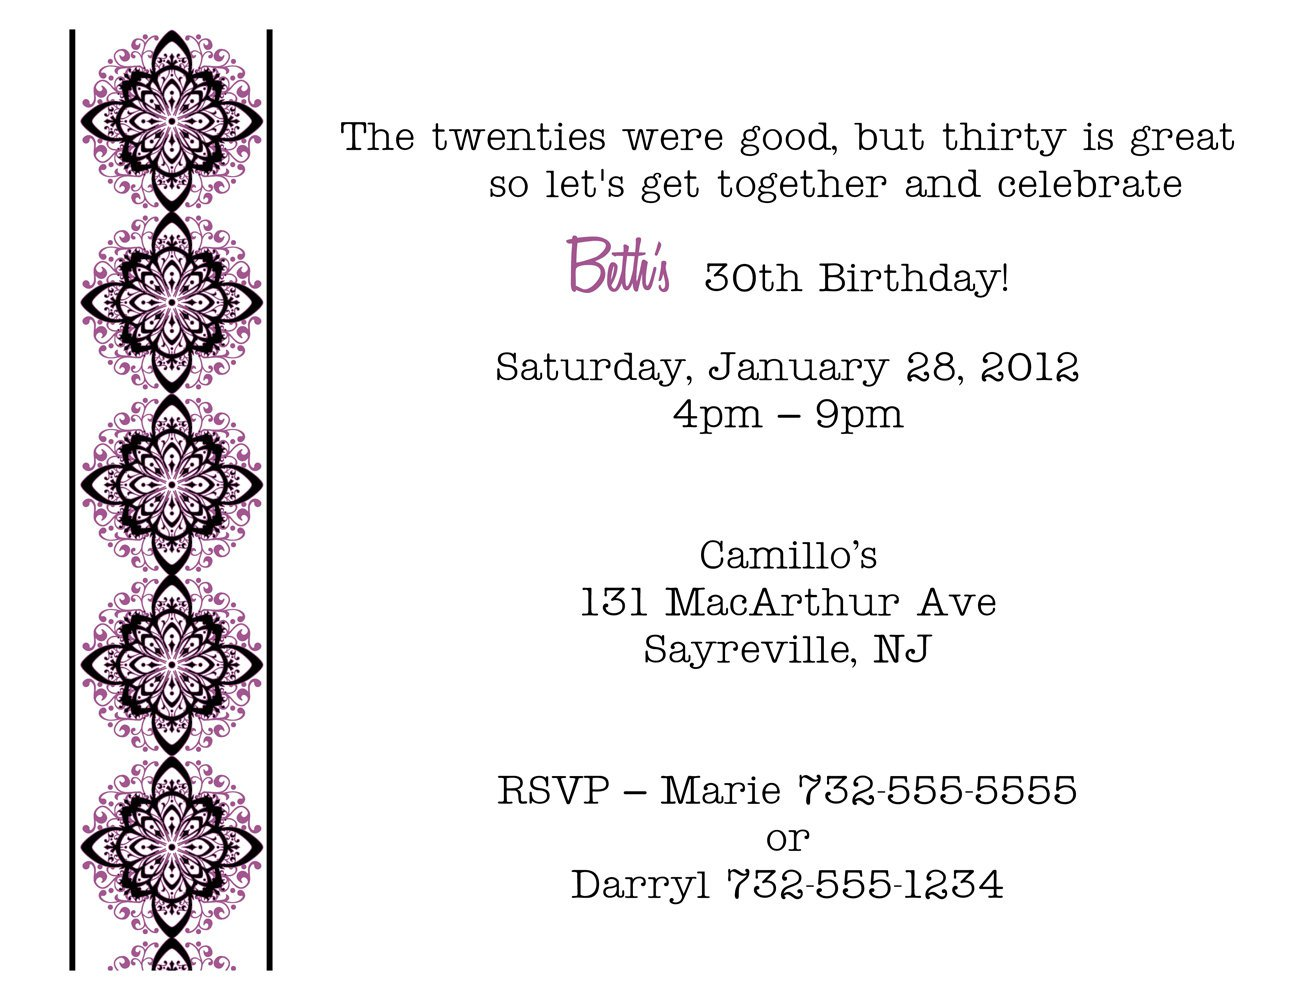 th birthday party invitation wording  mickey mouse invitations, Birthday invitations